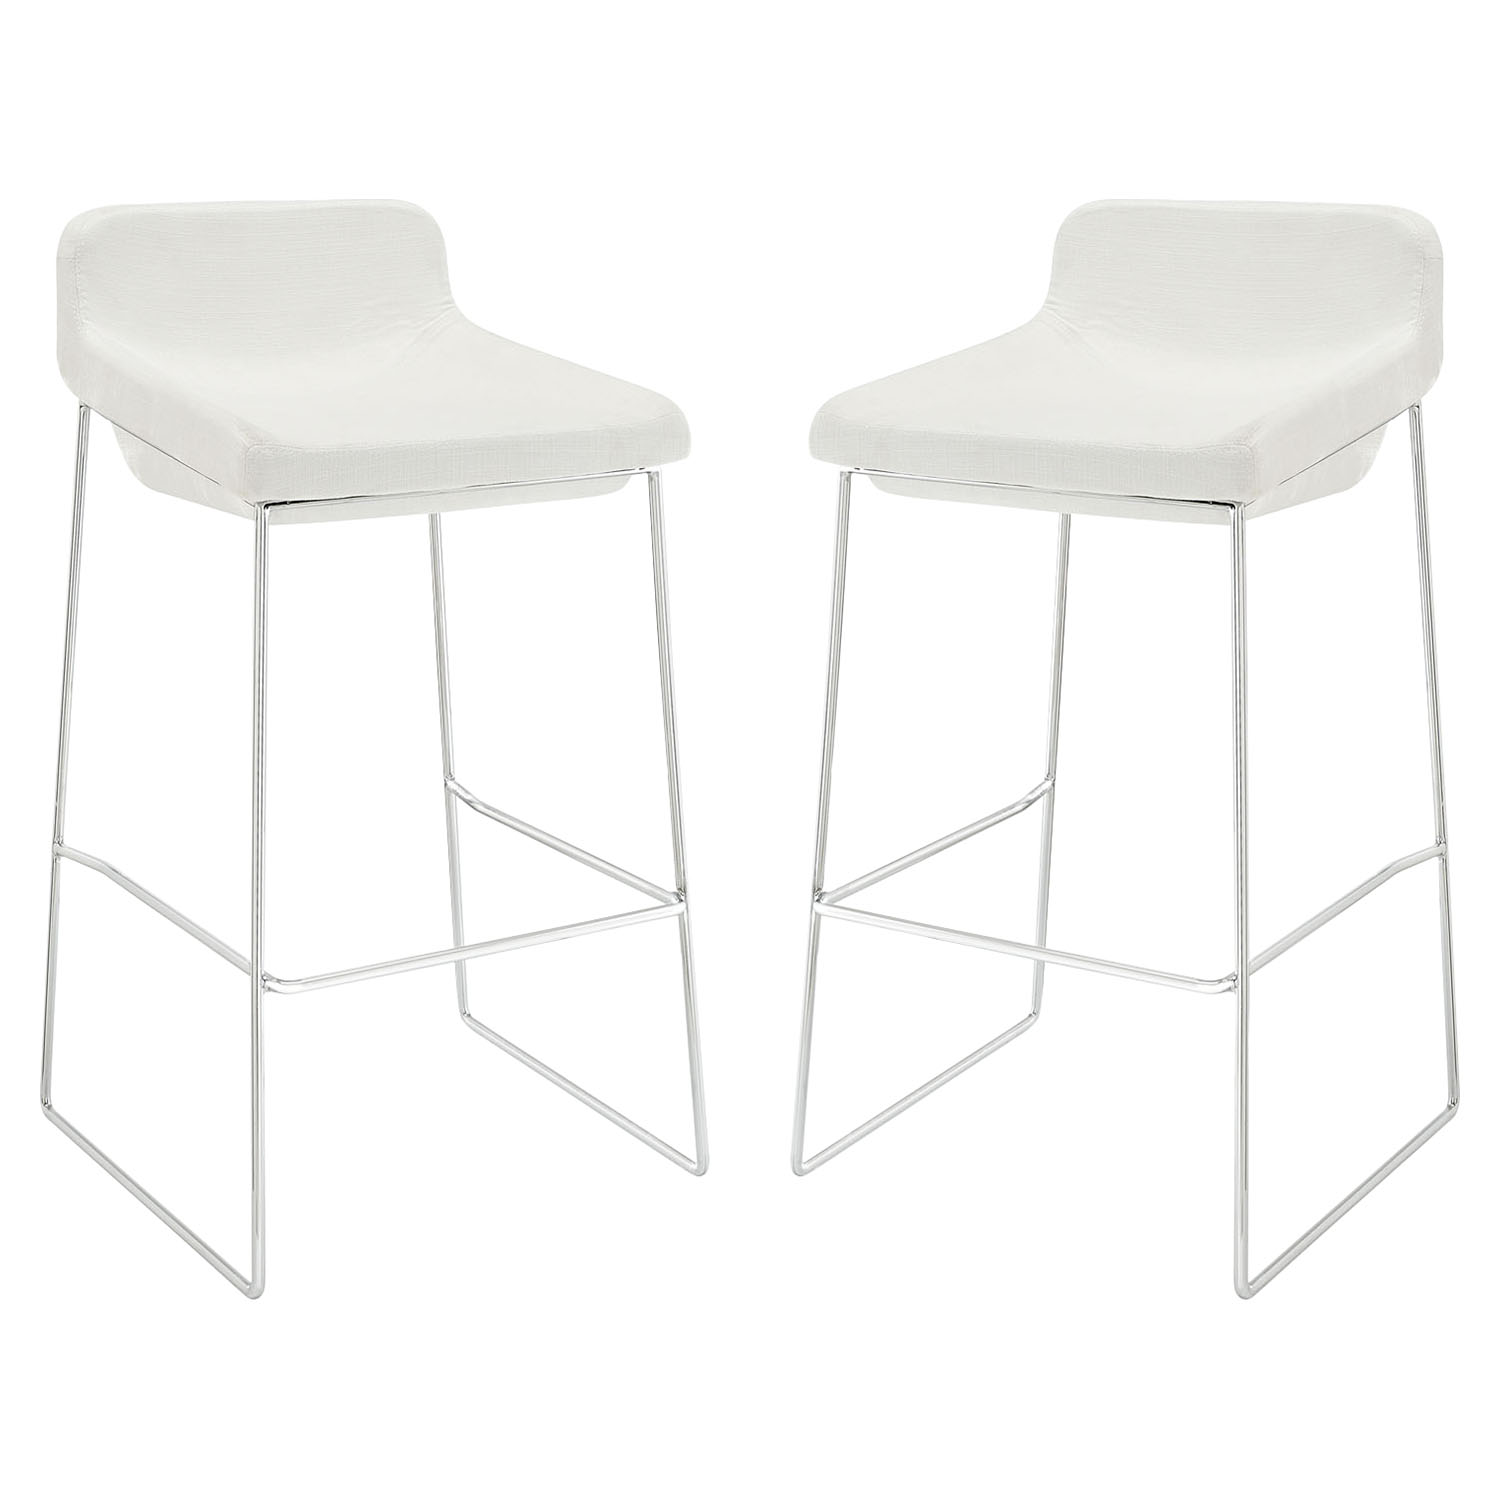 Garner Bar Stool - Backless, White (Set of 2)